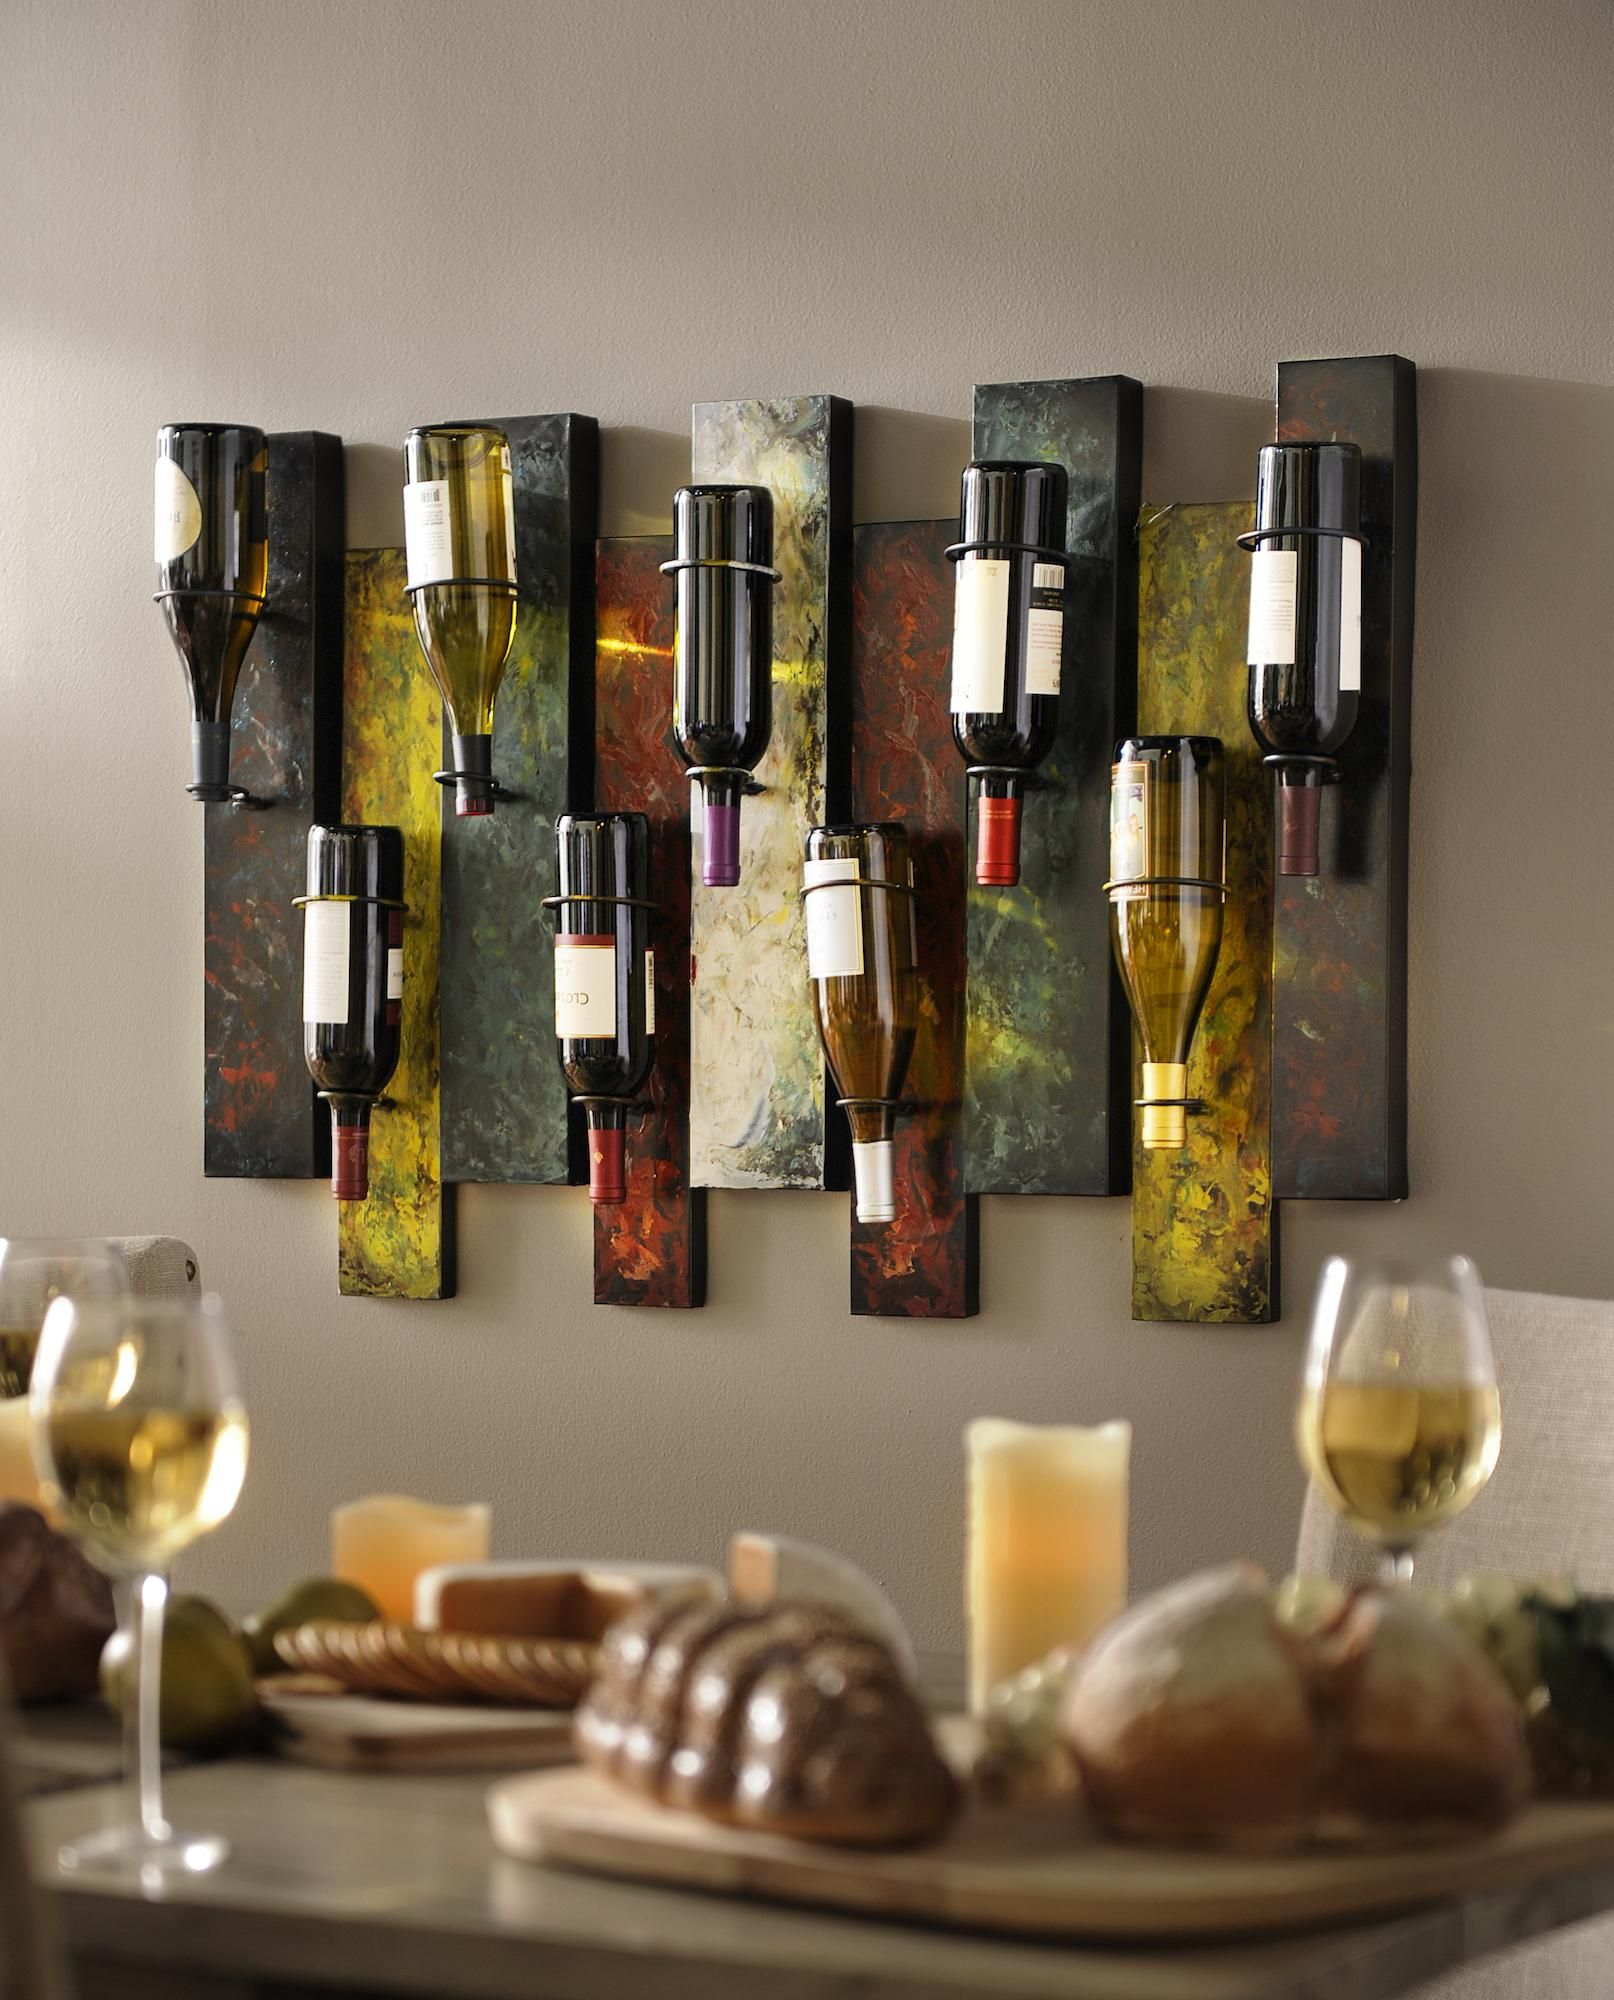 Wall Decor Is Not Just Paintings Or Picture Frames Metal Wall Art Brings A Unique And Modern Touch Wine Theme Kitchen Wine Bottle Holders Bottle Wall